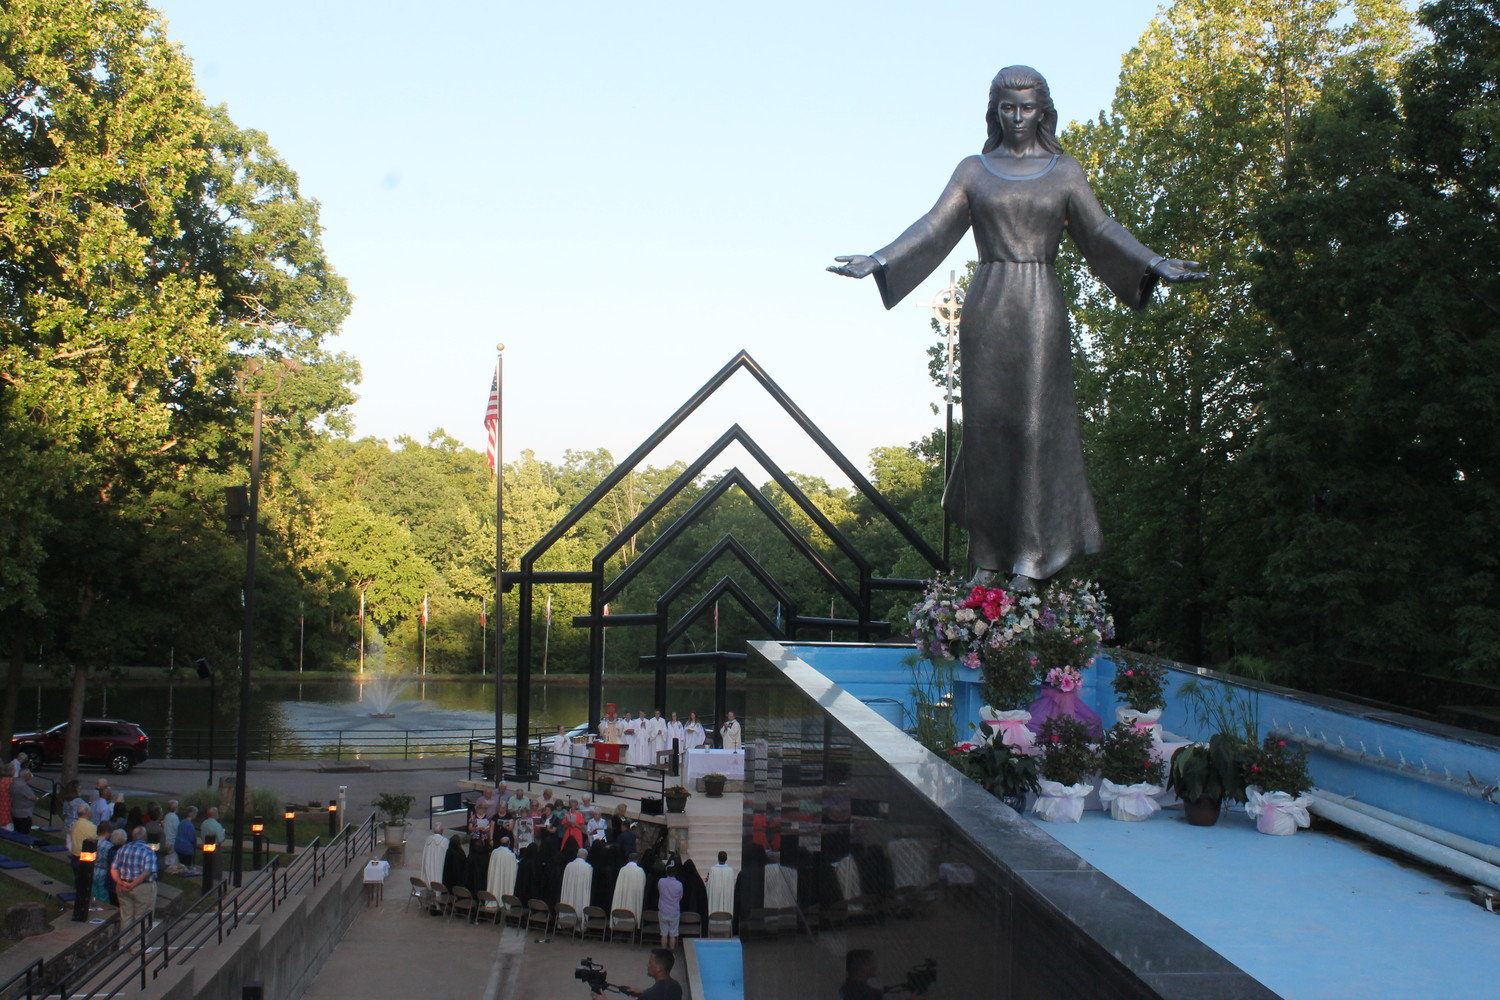 This sculpture of the Blessed Mother adorns the National Shrine of Mary, Mother of the Church, in Laurie, near the Lake of the Ozarks. In this 2018 photo, Bishop W. Shawn McKnight celebrates Mass for the newly established feastday for Mary, Mother of the Church, on the Monday after Pentecost.